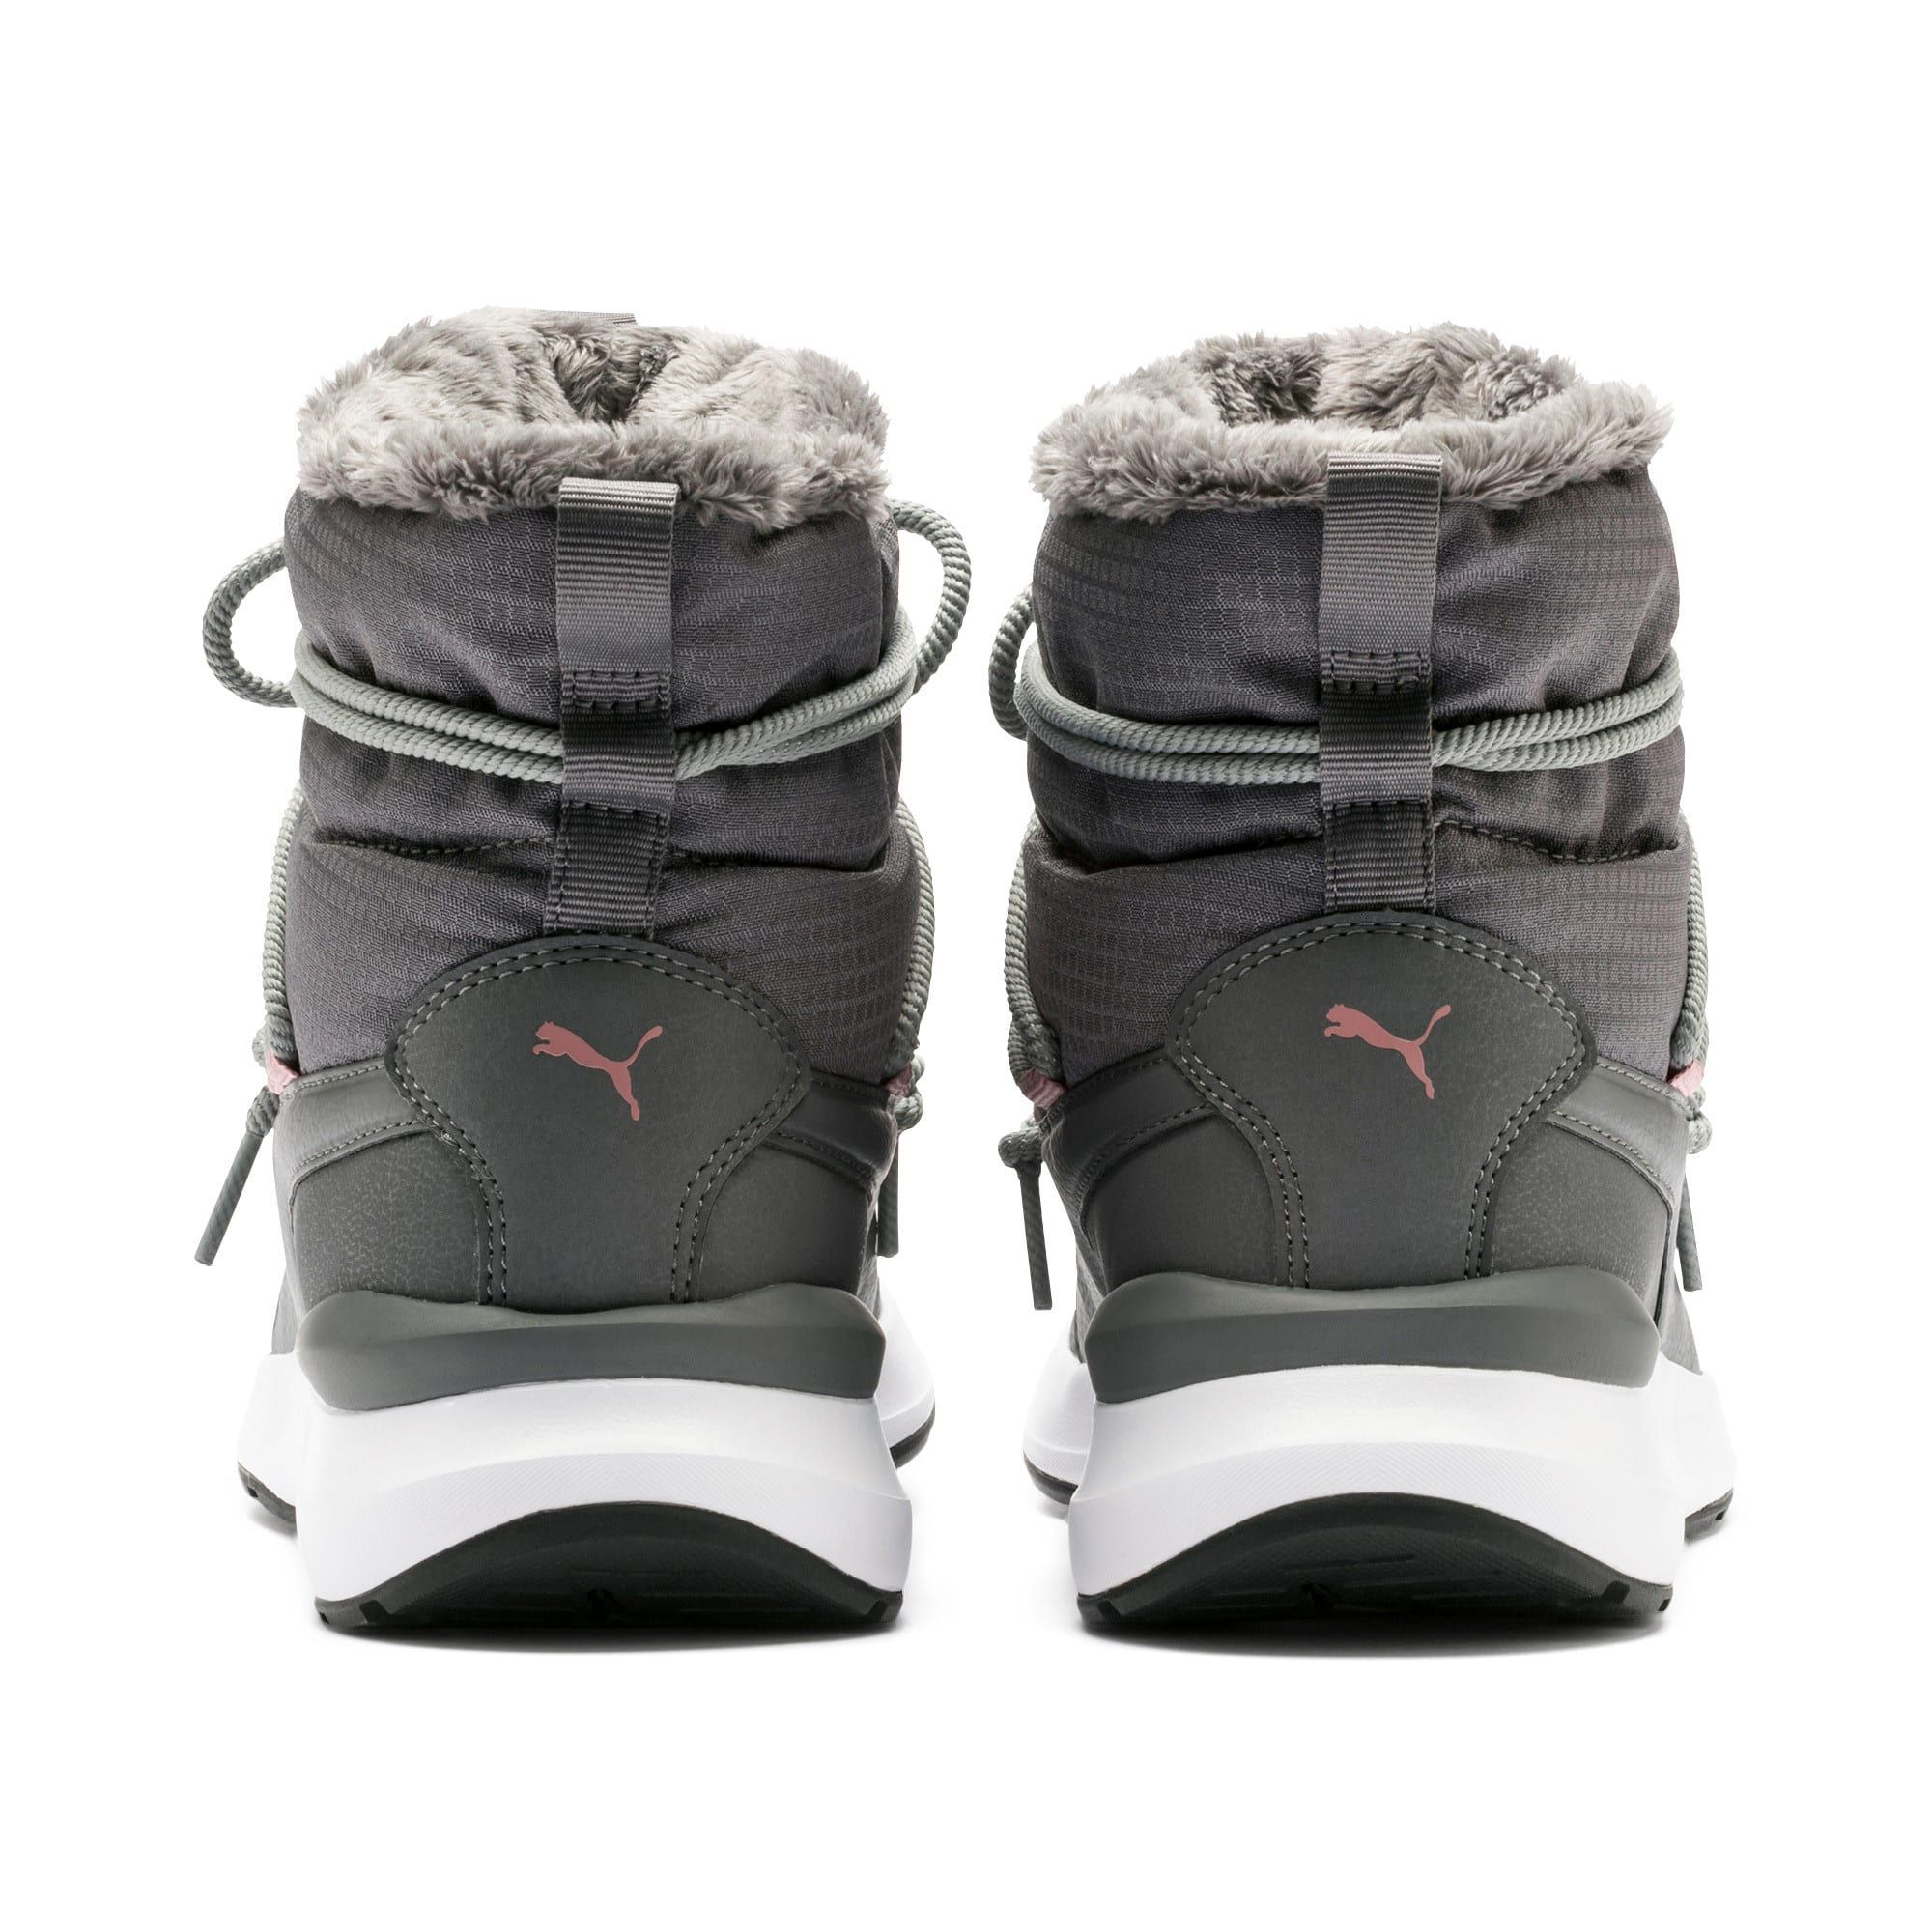 PUMA Adela Winter Boots in Steel GreyWhite size 6.5 | Boots